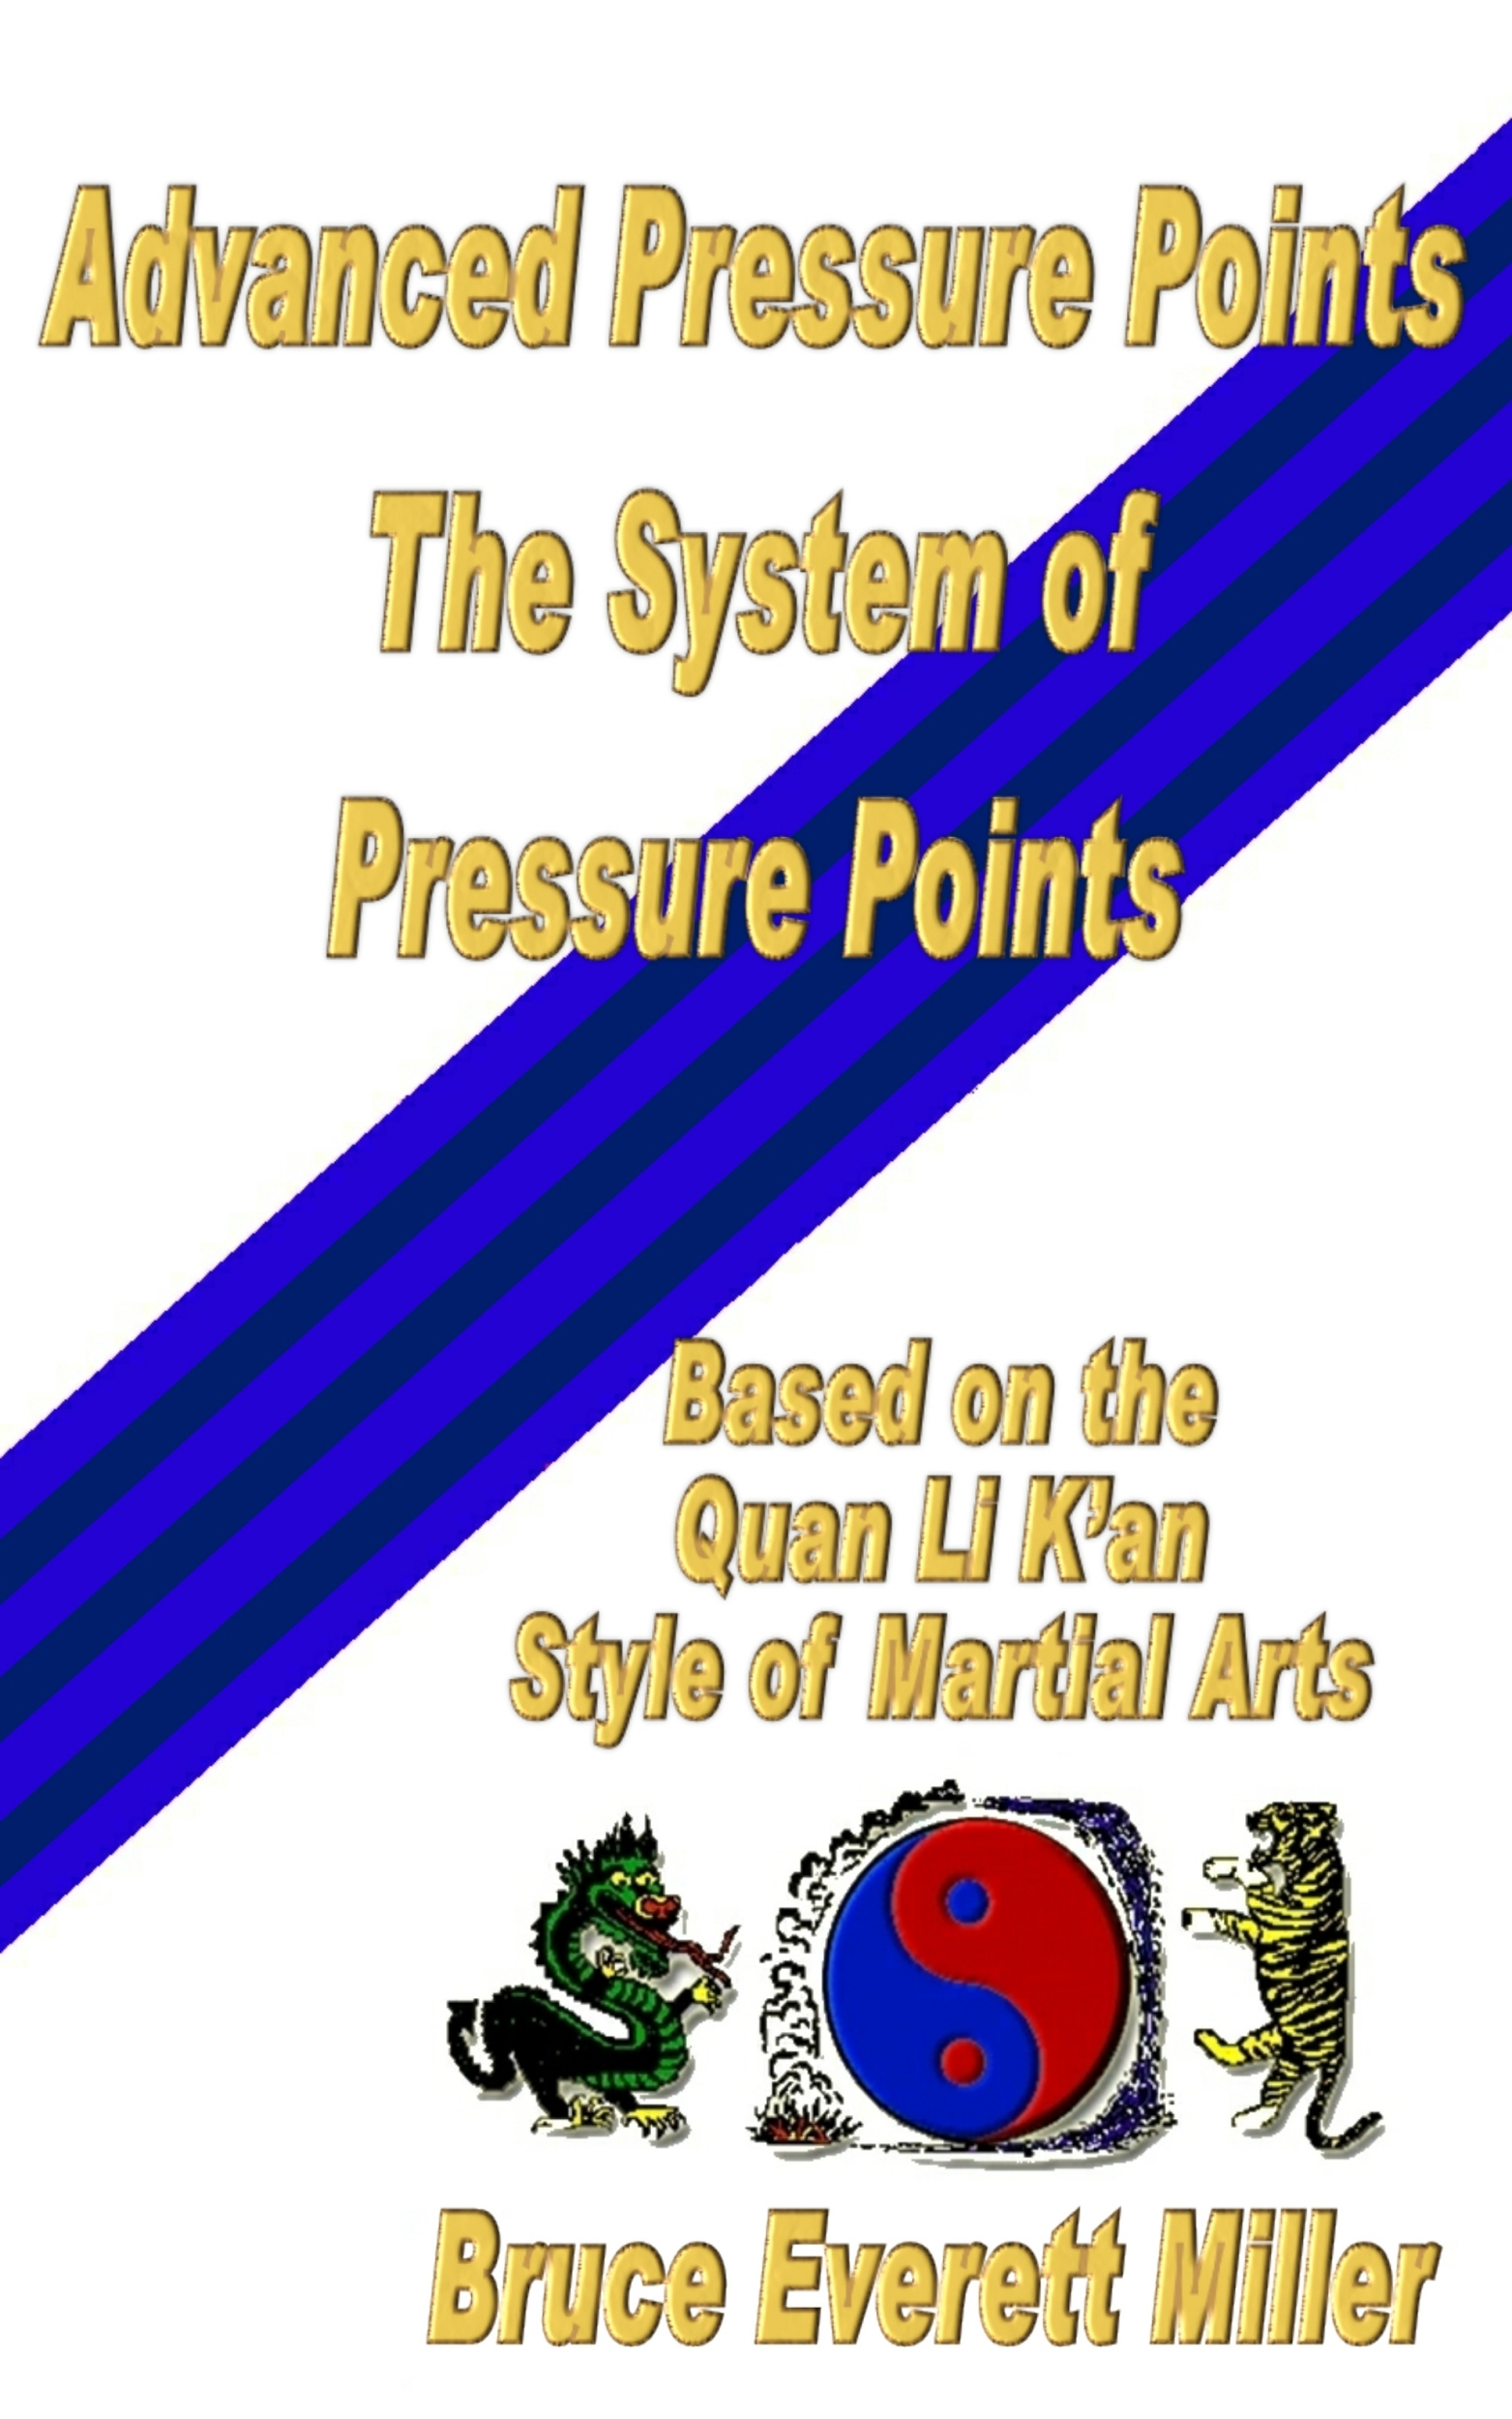 Advanced Pressure Points: The system of Pressure Points